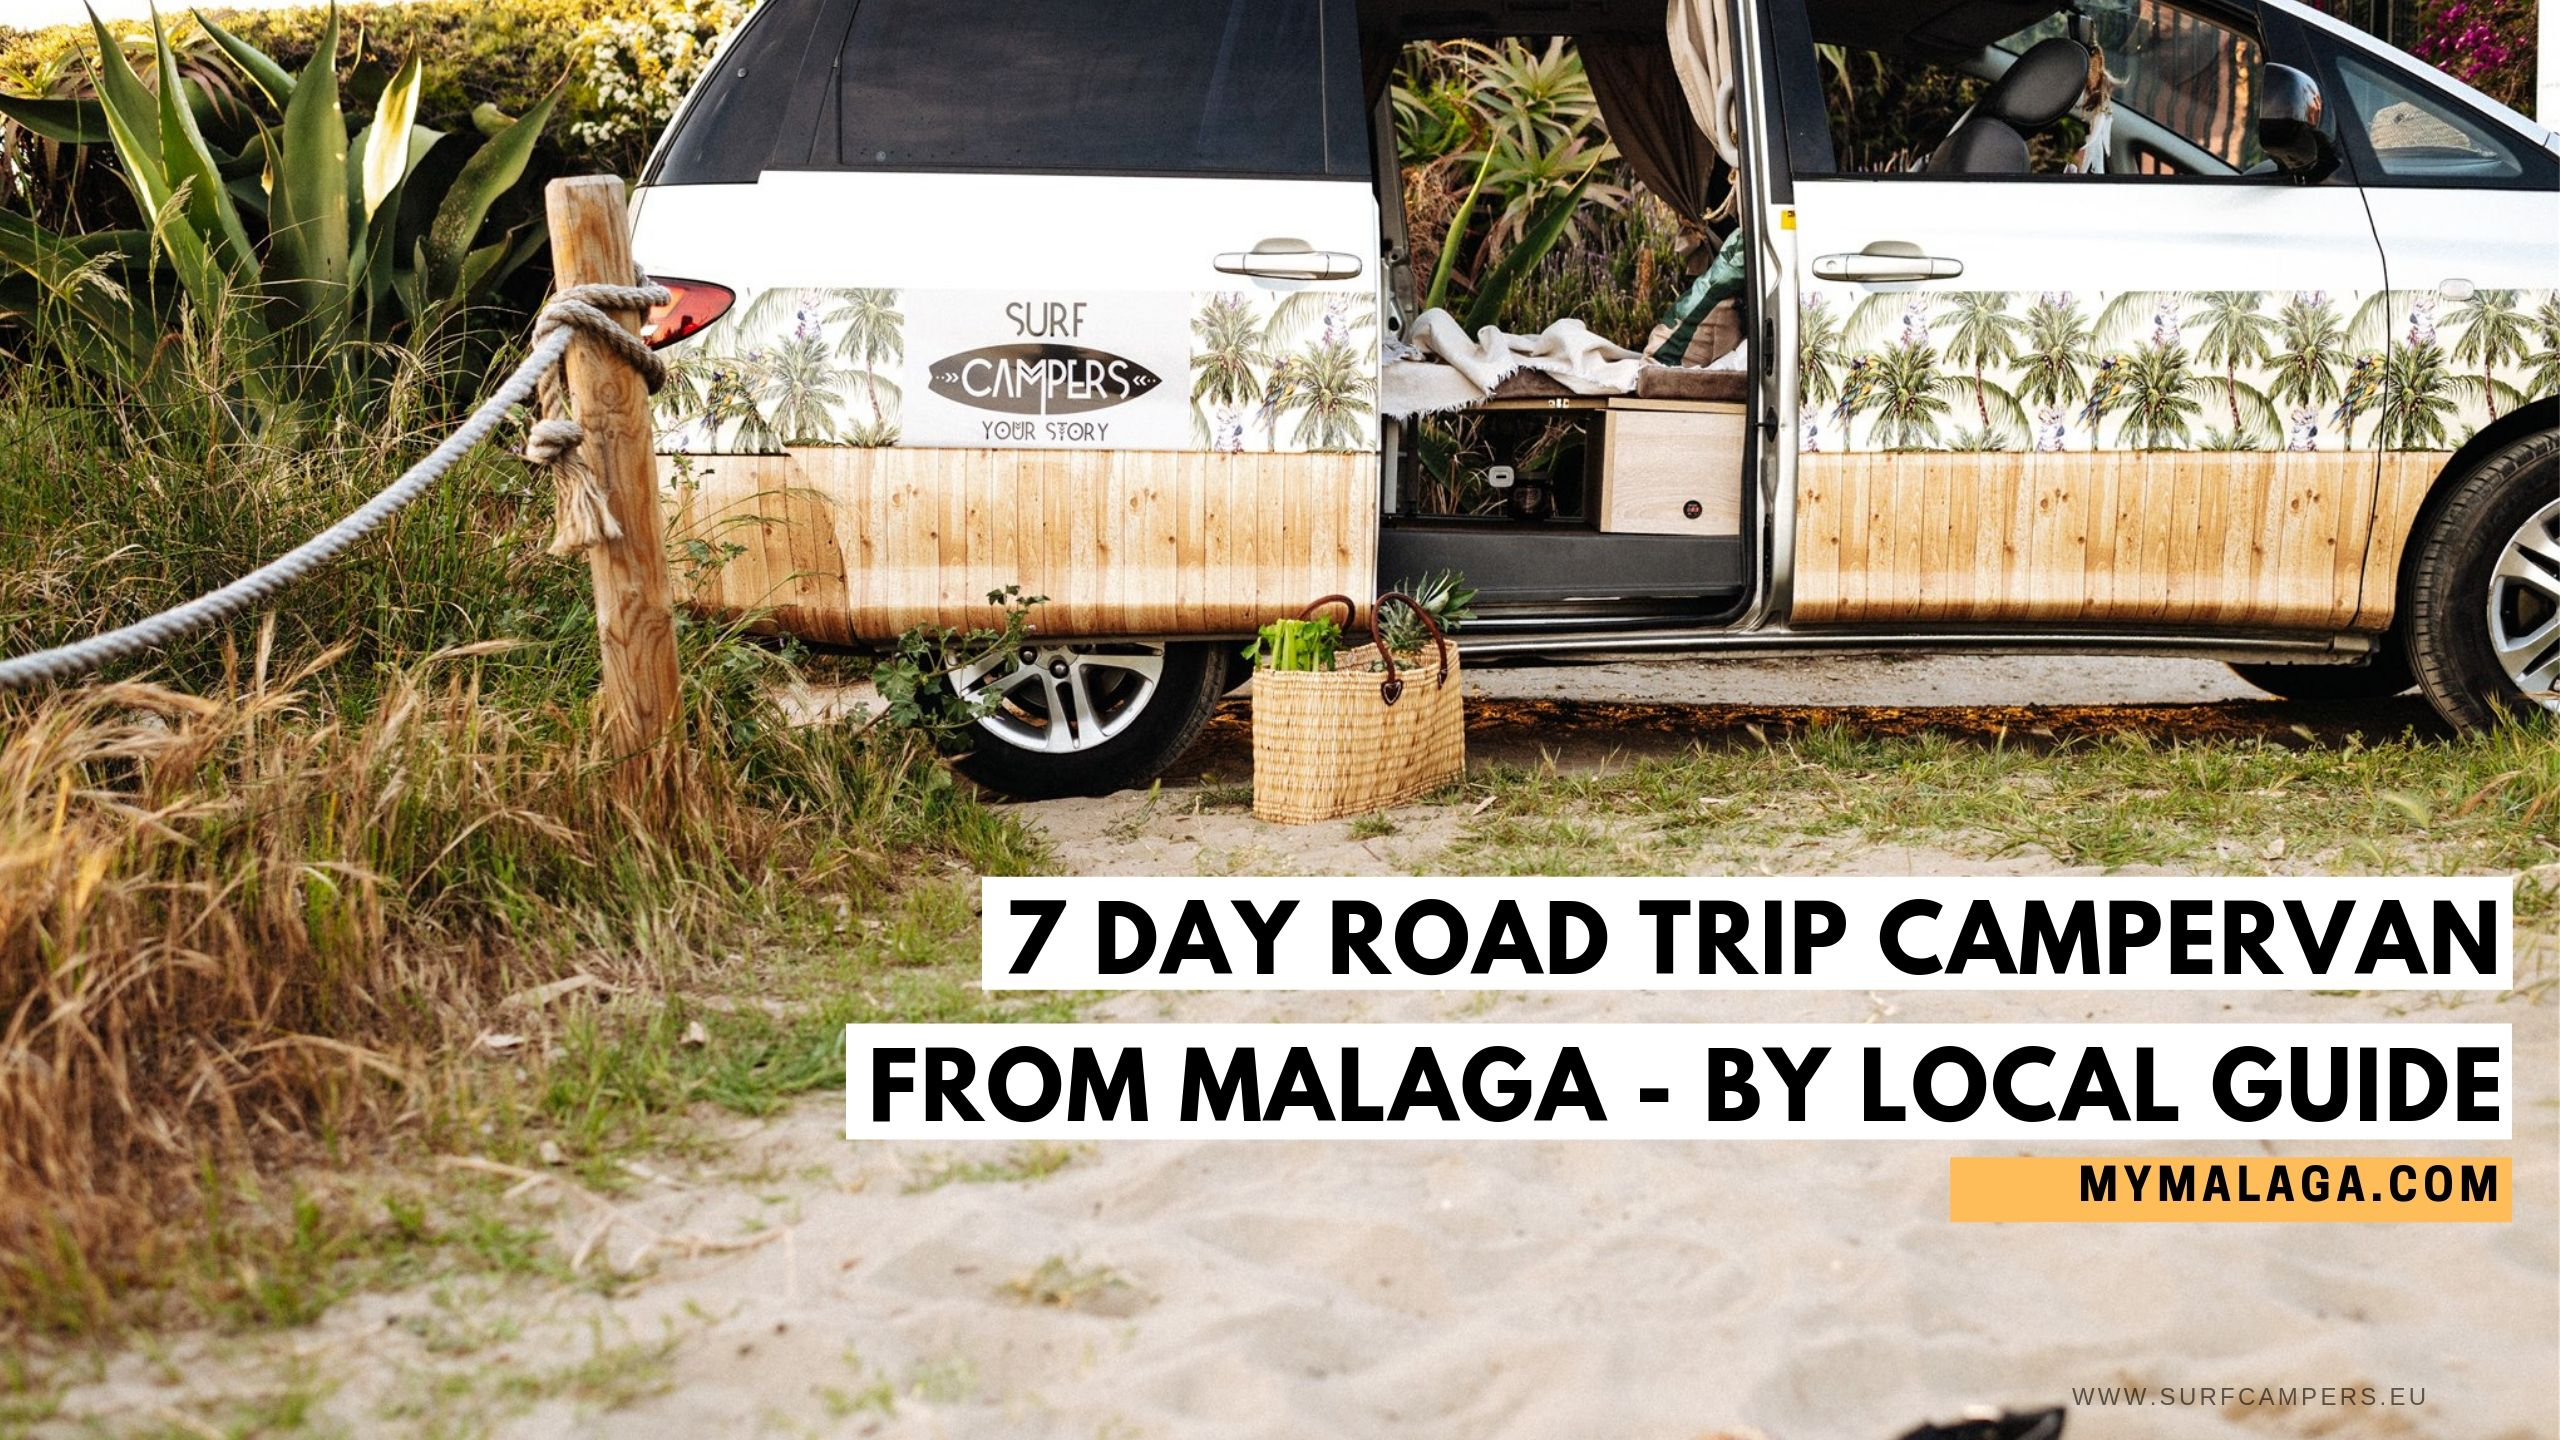 7 days road trip campervan from Malaga – by local guide MyMalaga.com